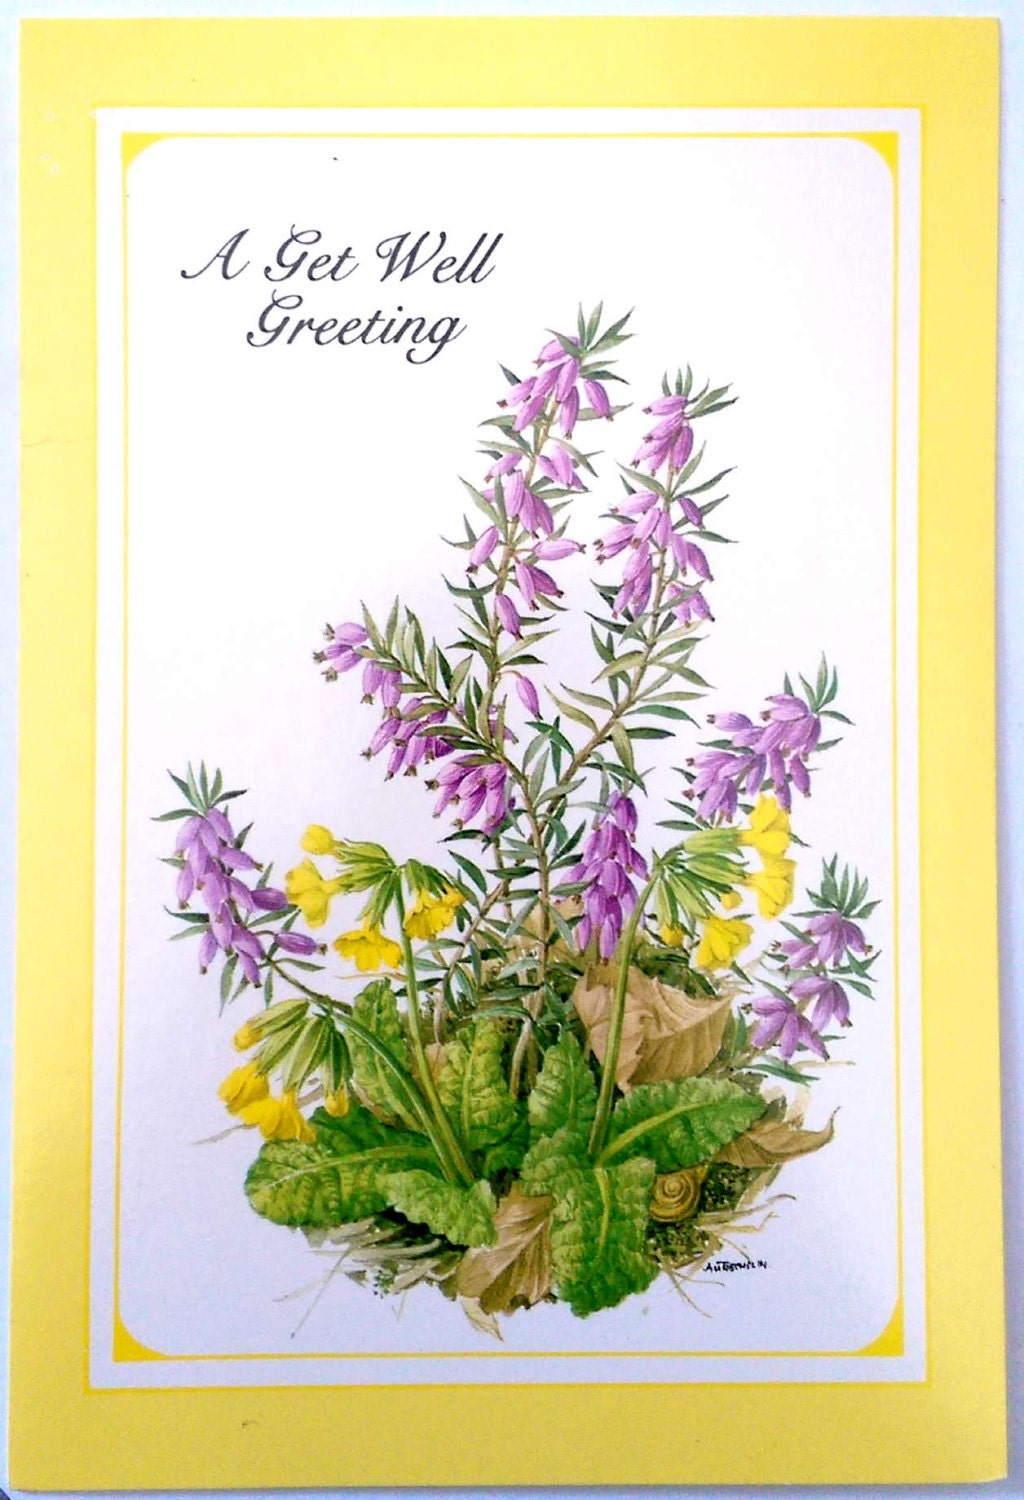 Gallant Greetings A Get Well Greeting Card 1980s 4 12 X 6 34